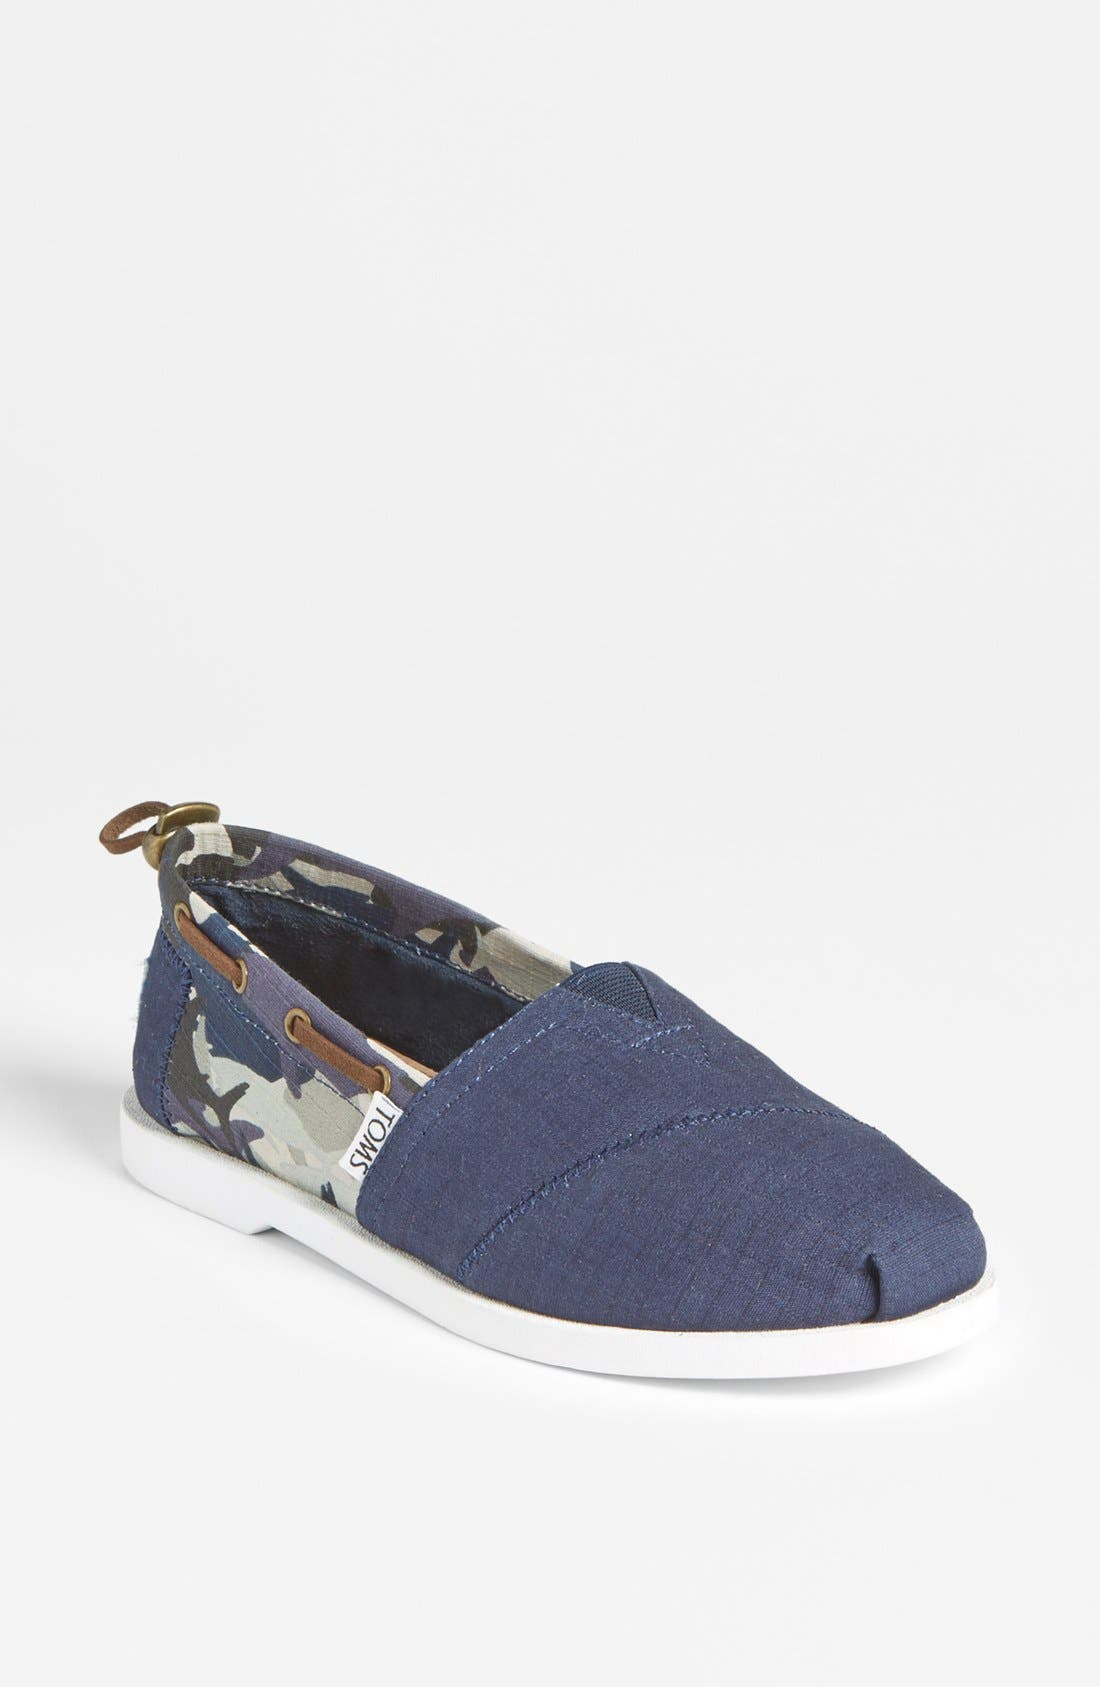 Alternate Image 1 Selected - TOMS 'Bimini - Shark Week'  Slip-On (Women) (Limited Edition)